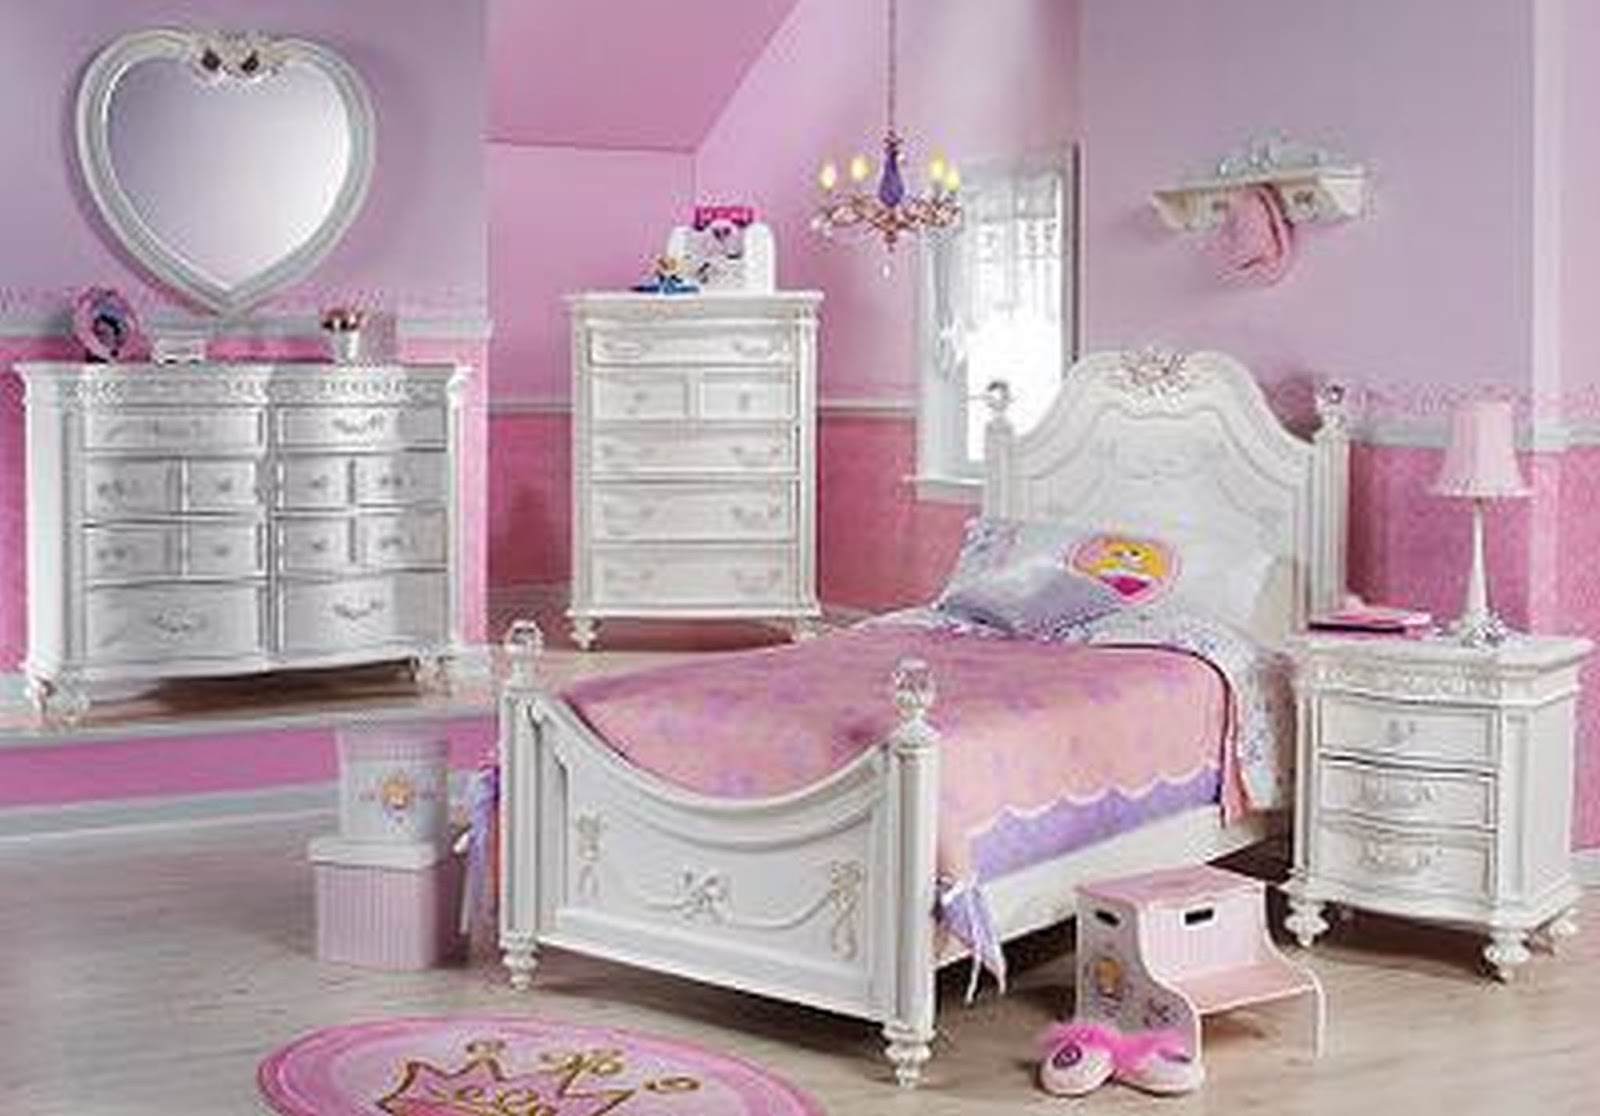 girls room decorating ideas pink 50 best princess theme bedroom design for girlsgirls room decorating ideas pink. Interior Design Ideas. Home Design Ideas